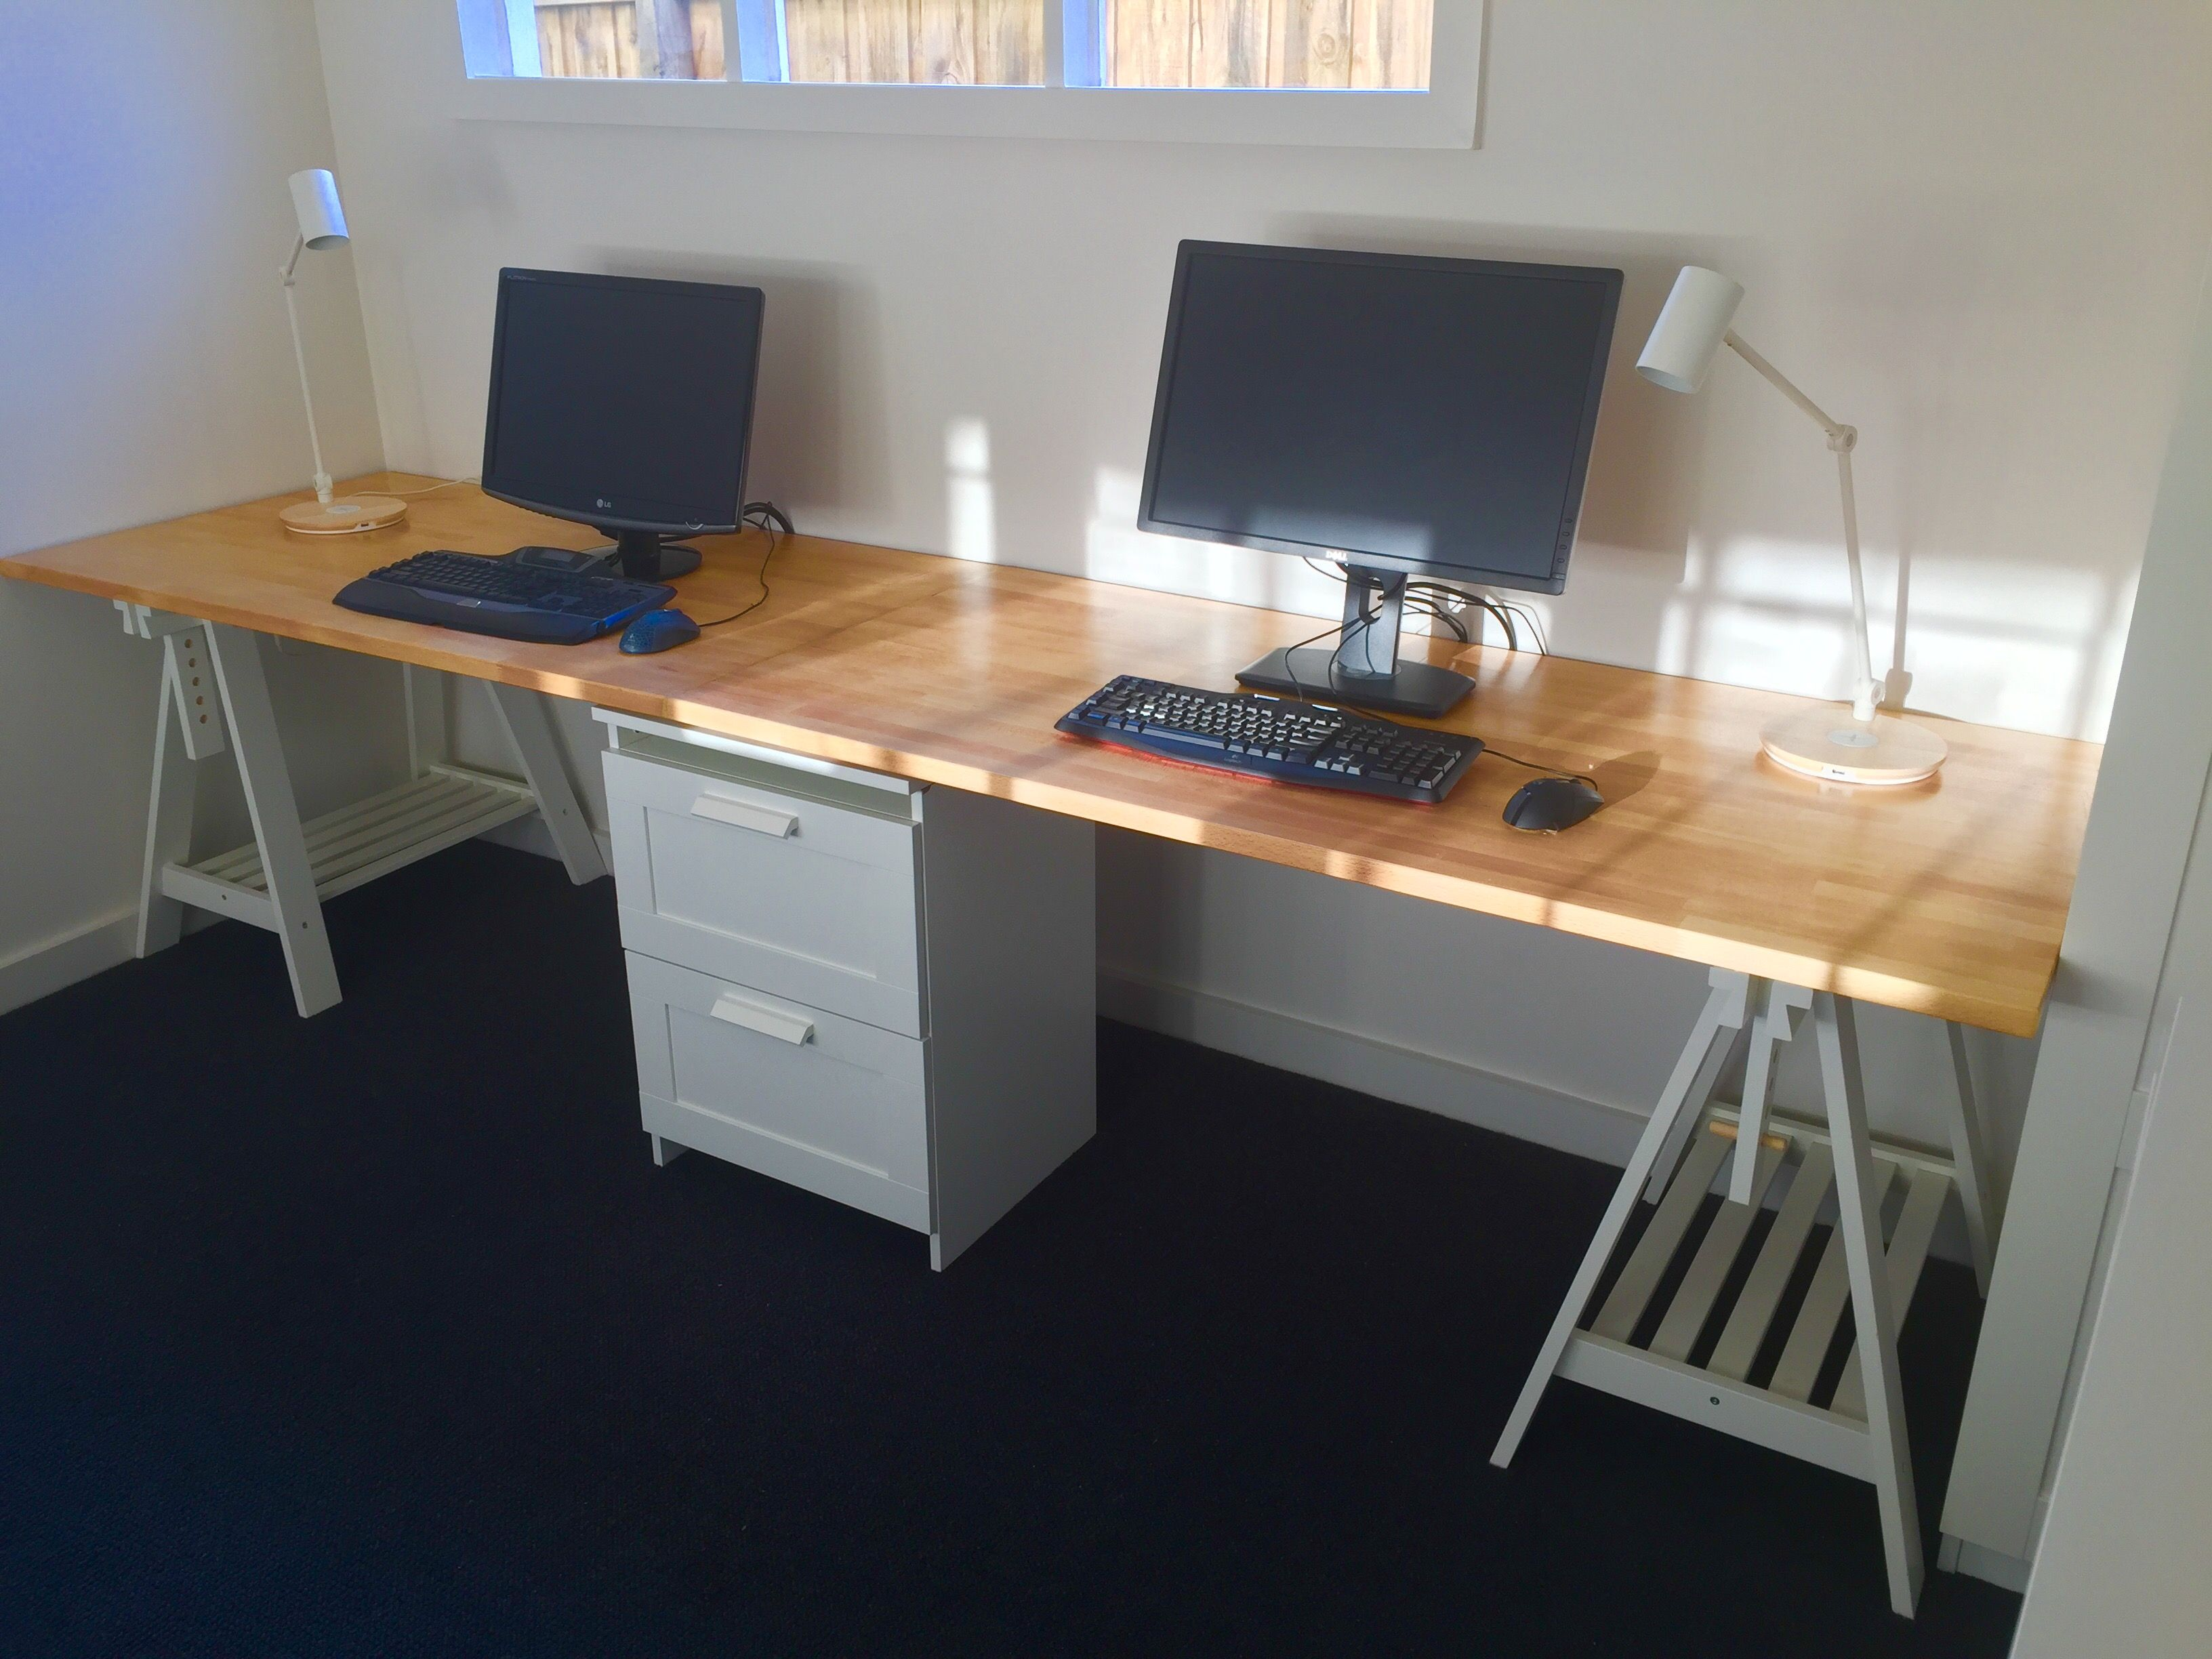 Long Home Office Desk Made From Two Ikea Gerton Beech Table Tops With Support From Two Ikea Ad Office Design Diy Office Furniture Design Home Office Furniture